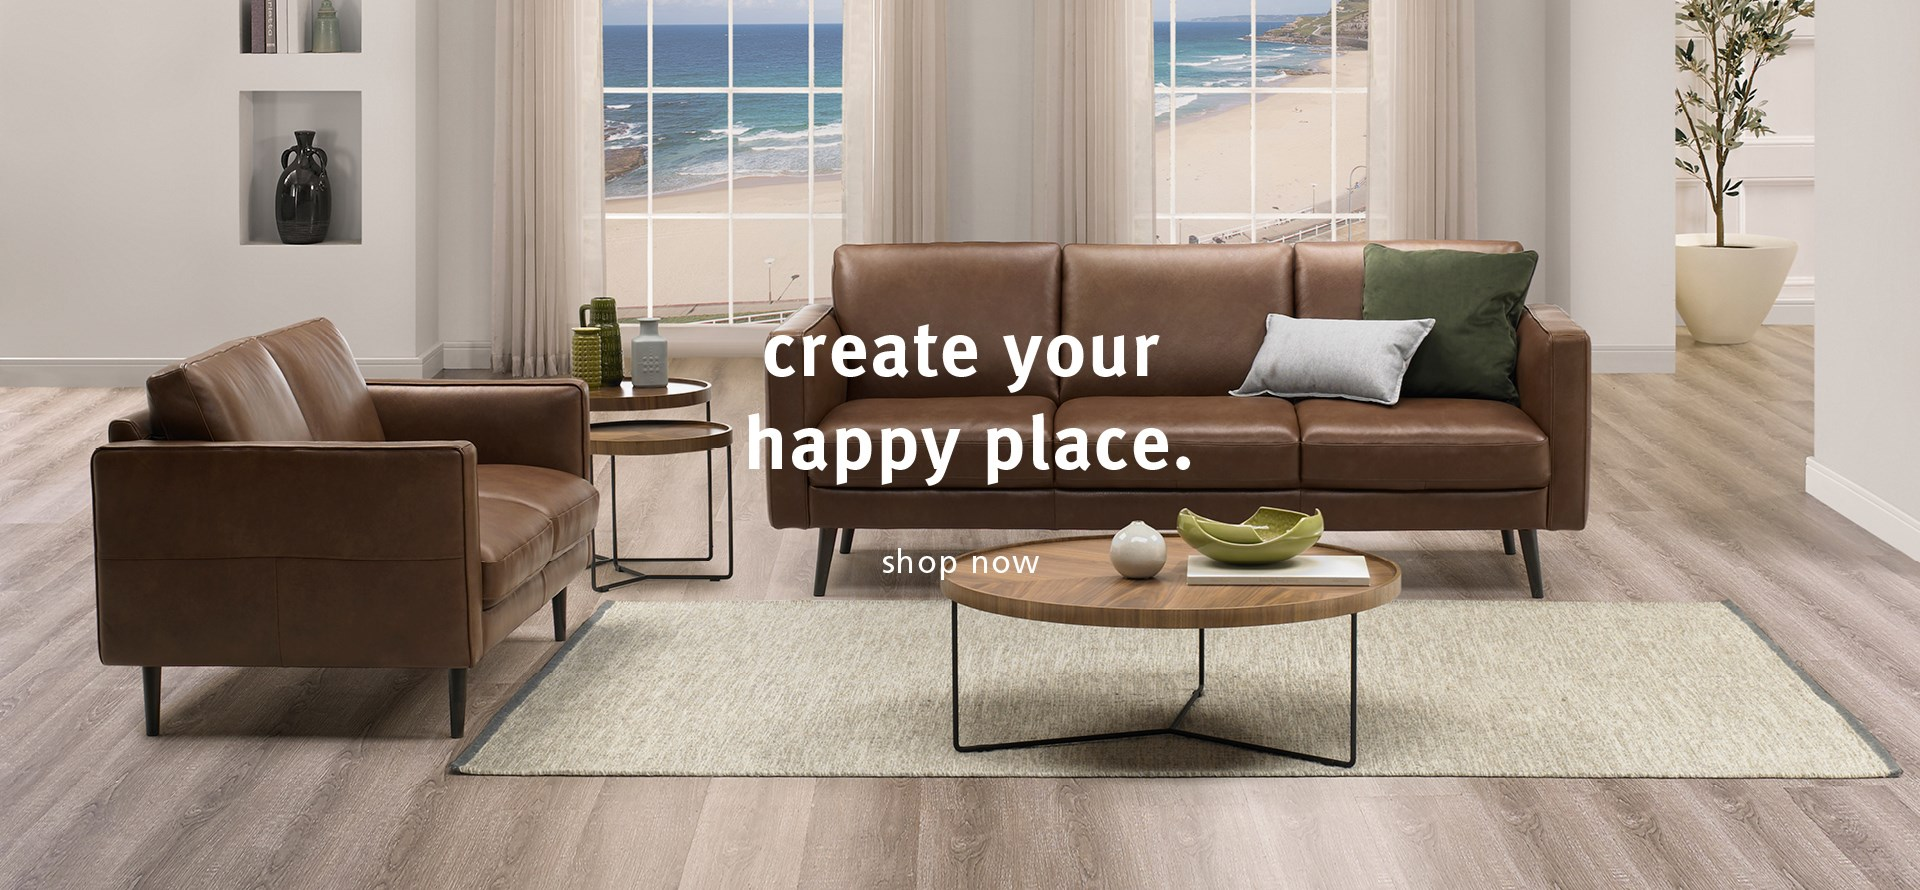 Create Your Happy Place. Shop Now.